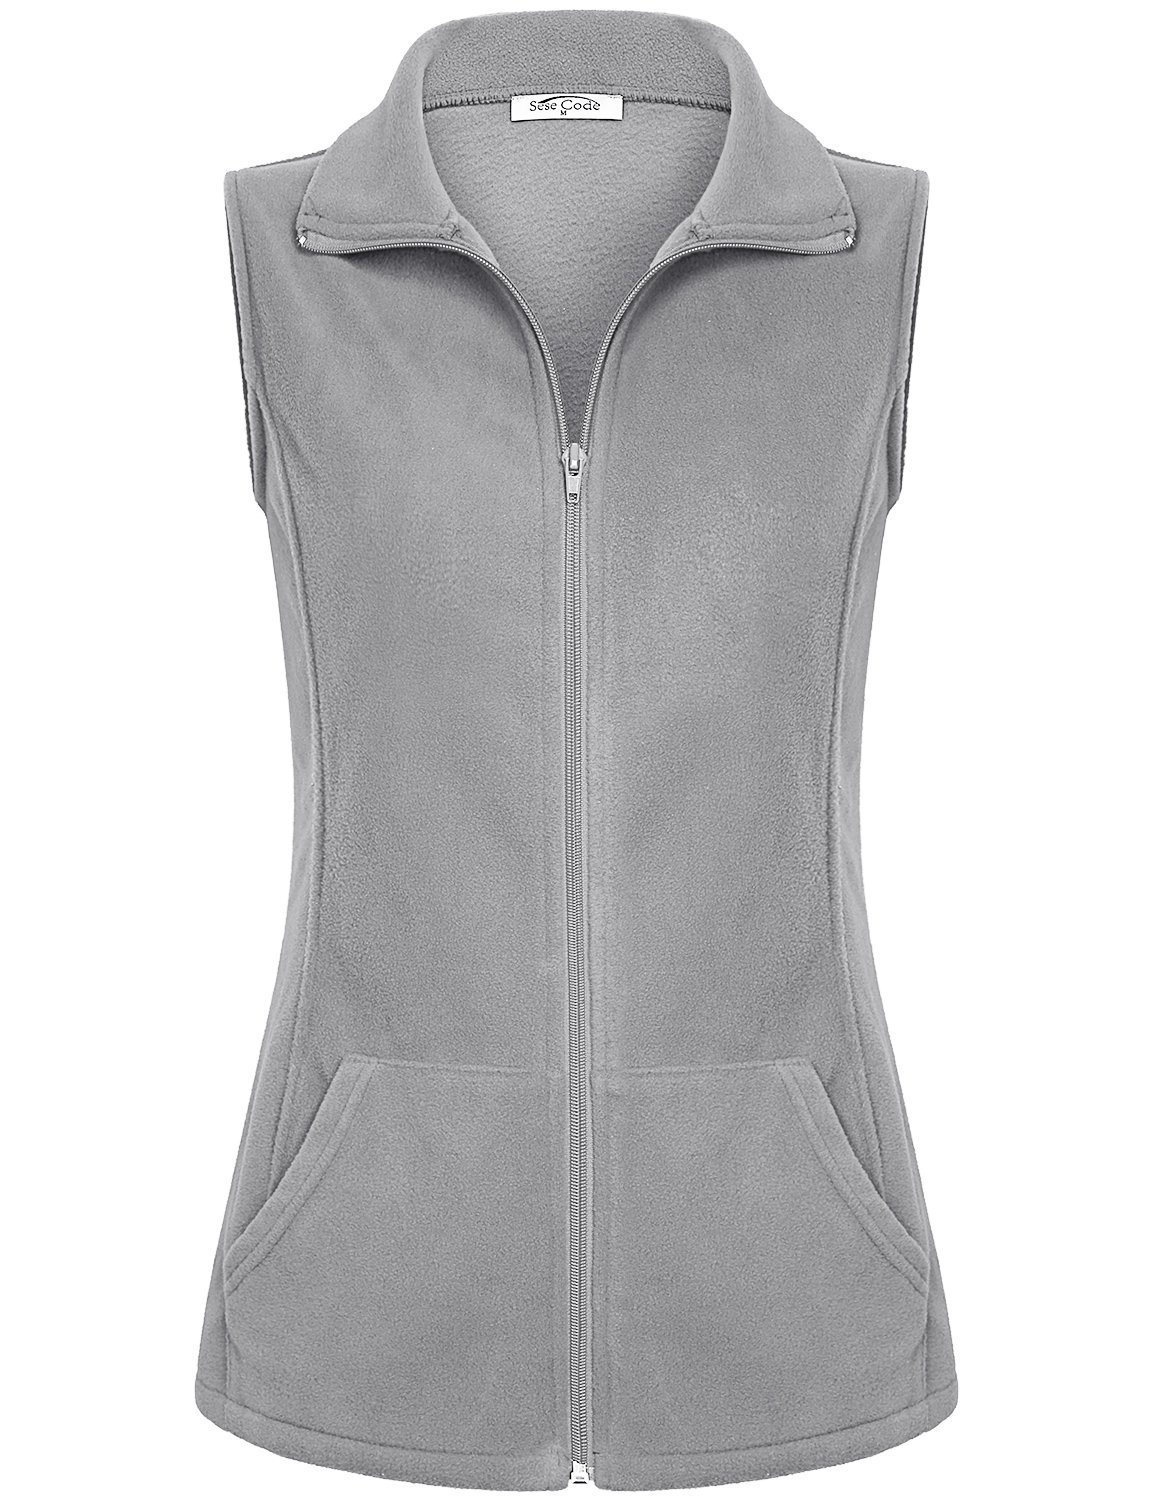 SeSe Code Warm Vest for Women Women Lightweight Fleece Zip up High Collar Fashion Outfits Pure Color Slant Pockets Elastic Comfy Contemporary Sleeveless Coat Top Grey-1 L